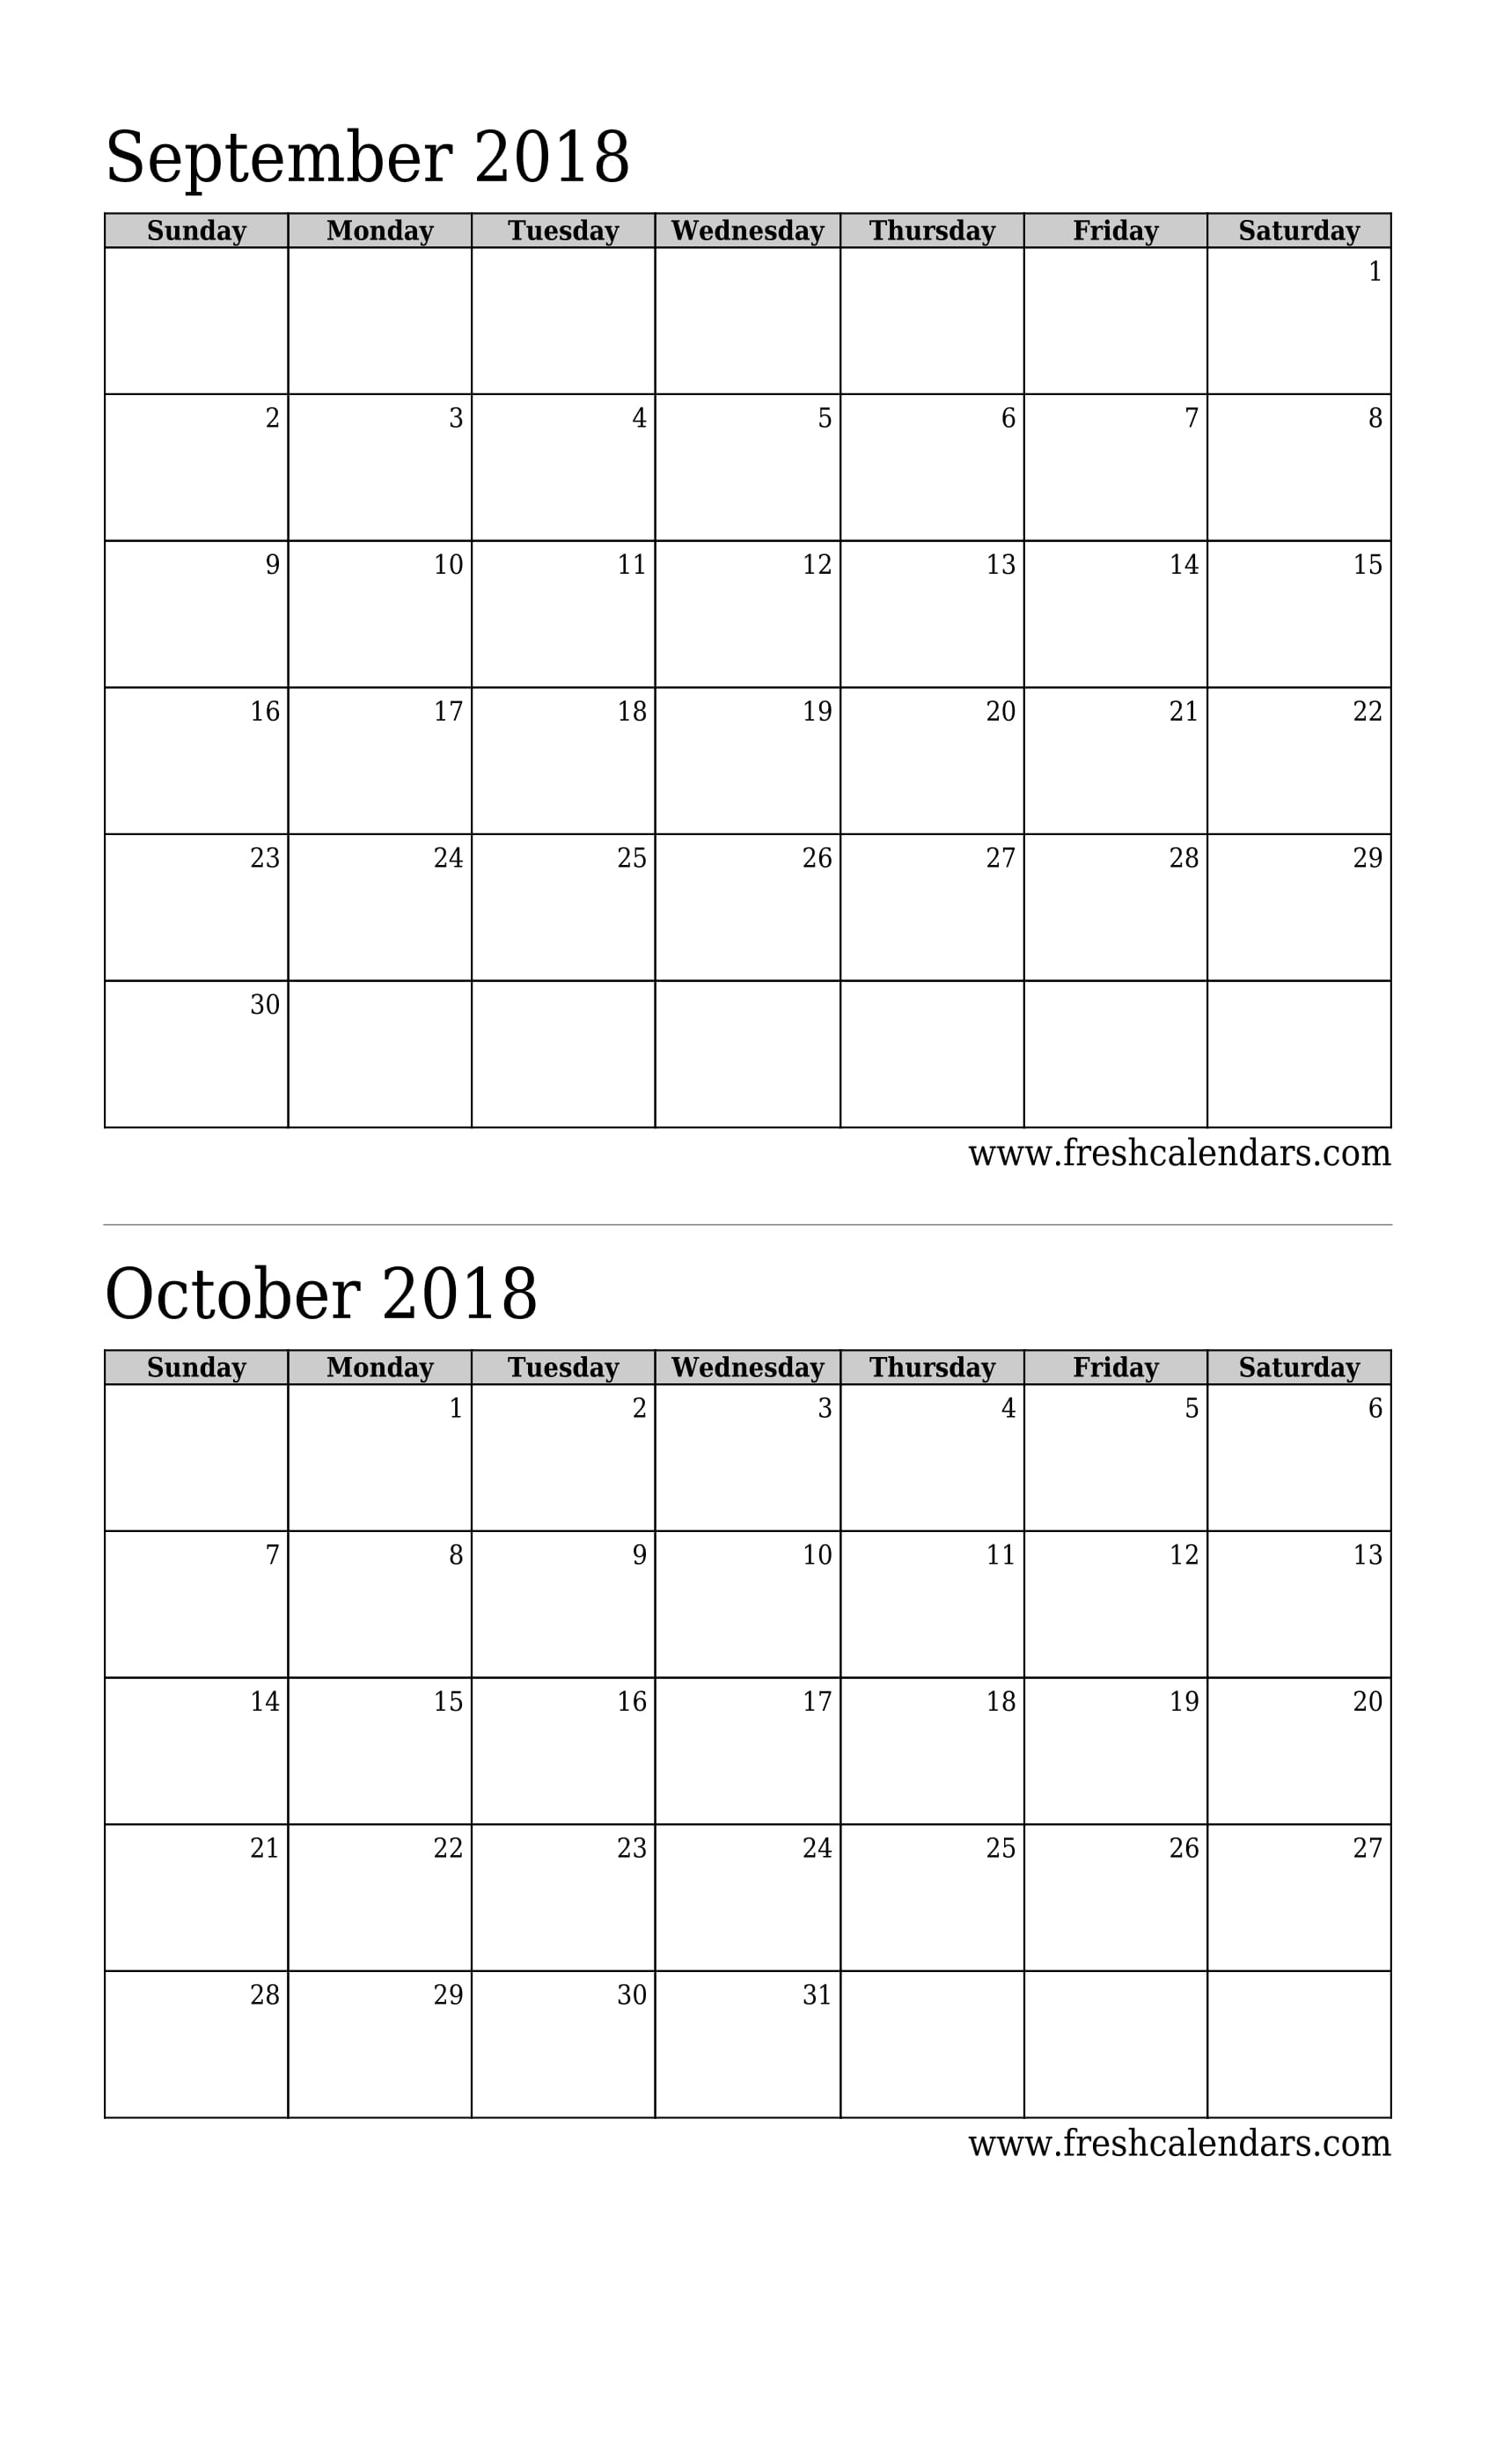 image about Printable 2 Month Calendar called September 2018 Calendar Printable - Fresh new Calendars